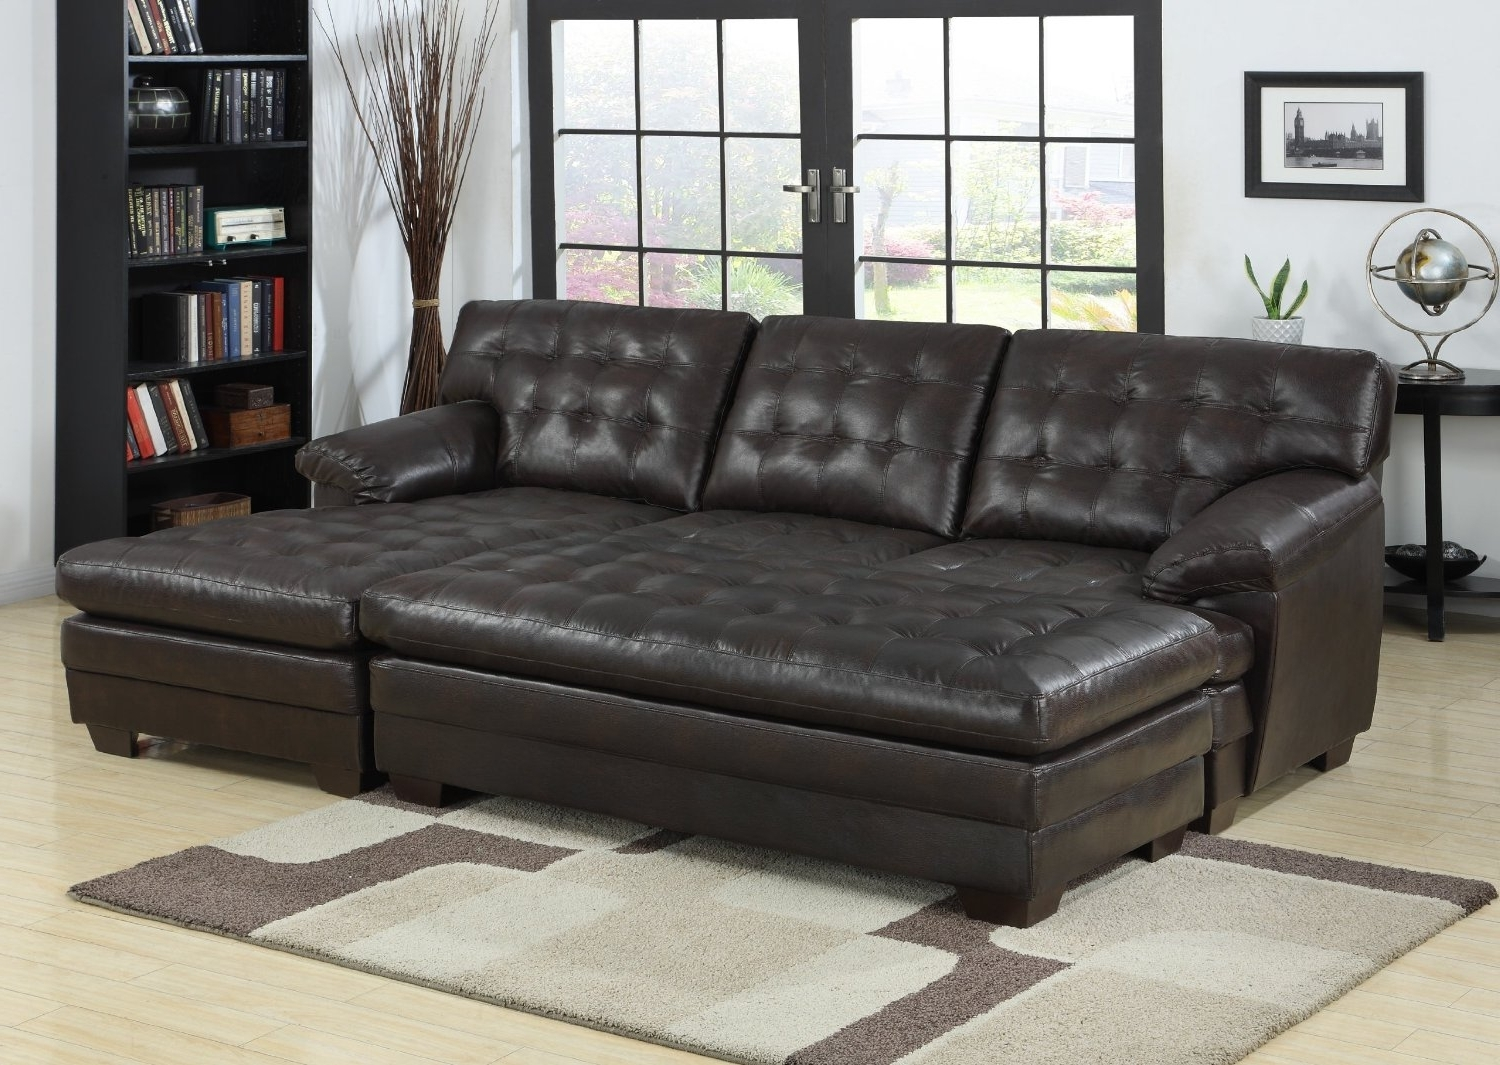 Leather Sectional Sleeper Sofas With Chaise For Famous Armchair : Leather Sectional Sleeper Sofa With Chaise Sectional (View 3 of 15)